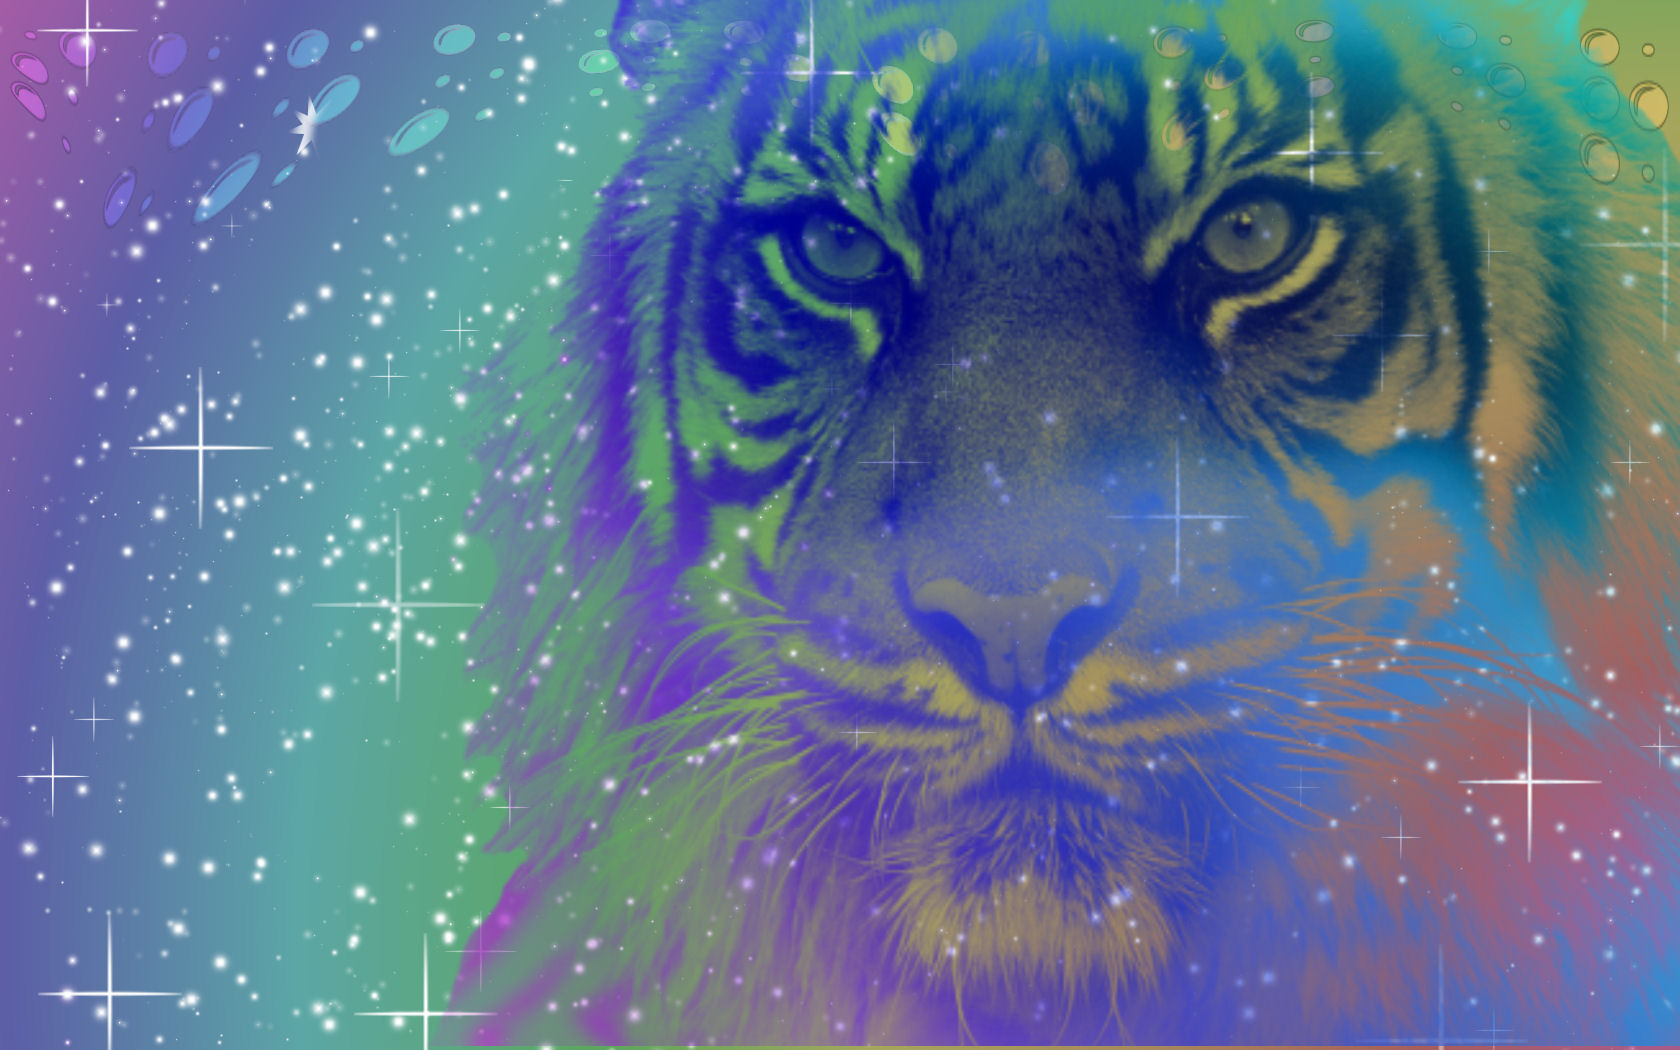 Sookie Tiger Wallpaper By Sookiesooker